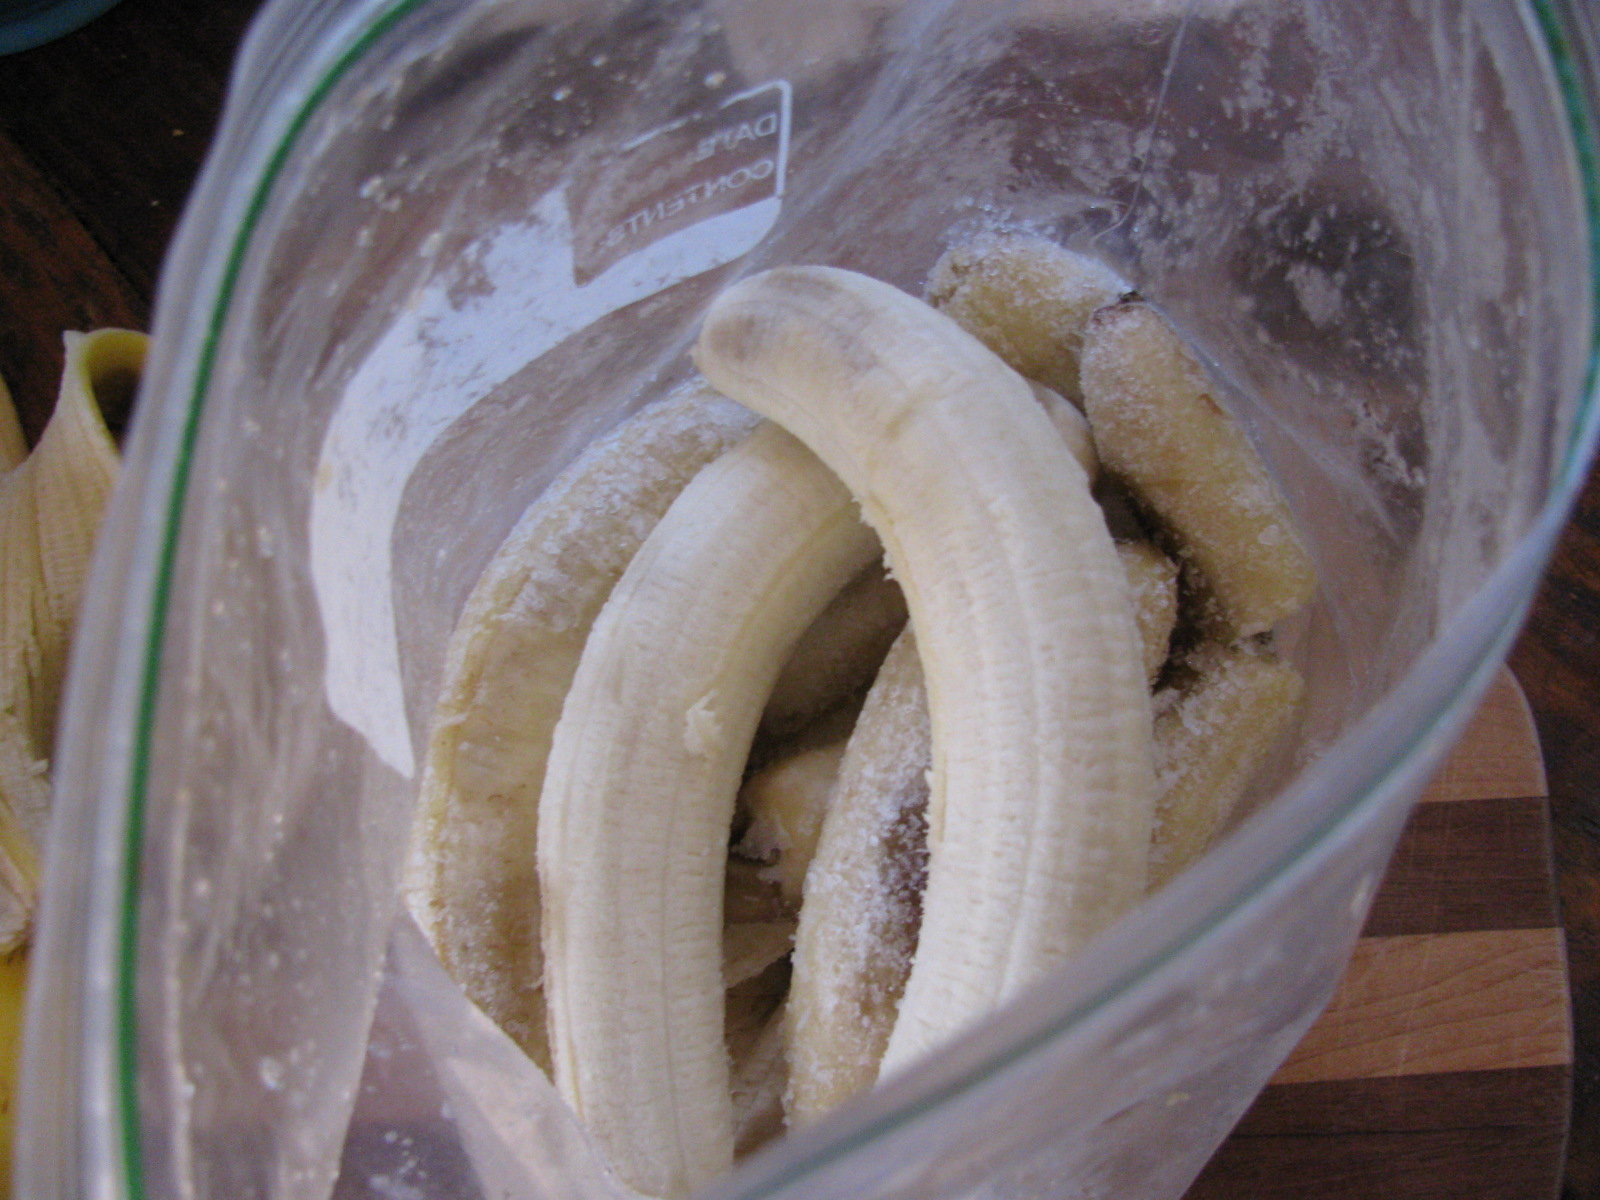 bananas in a ziplock bag